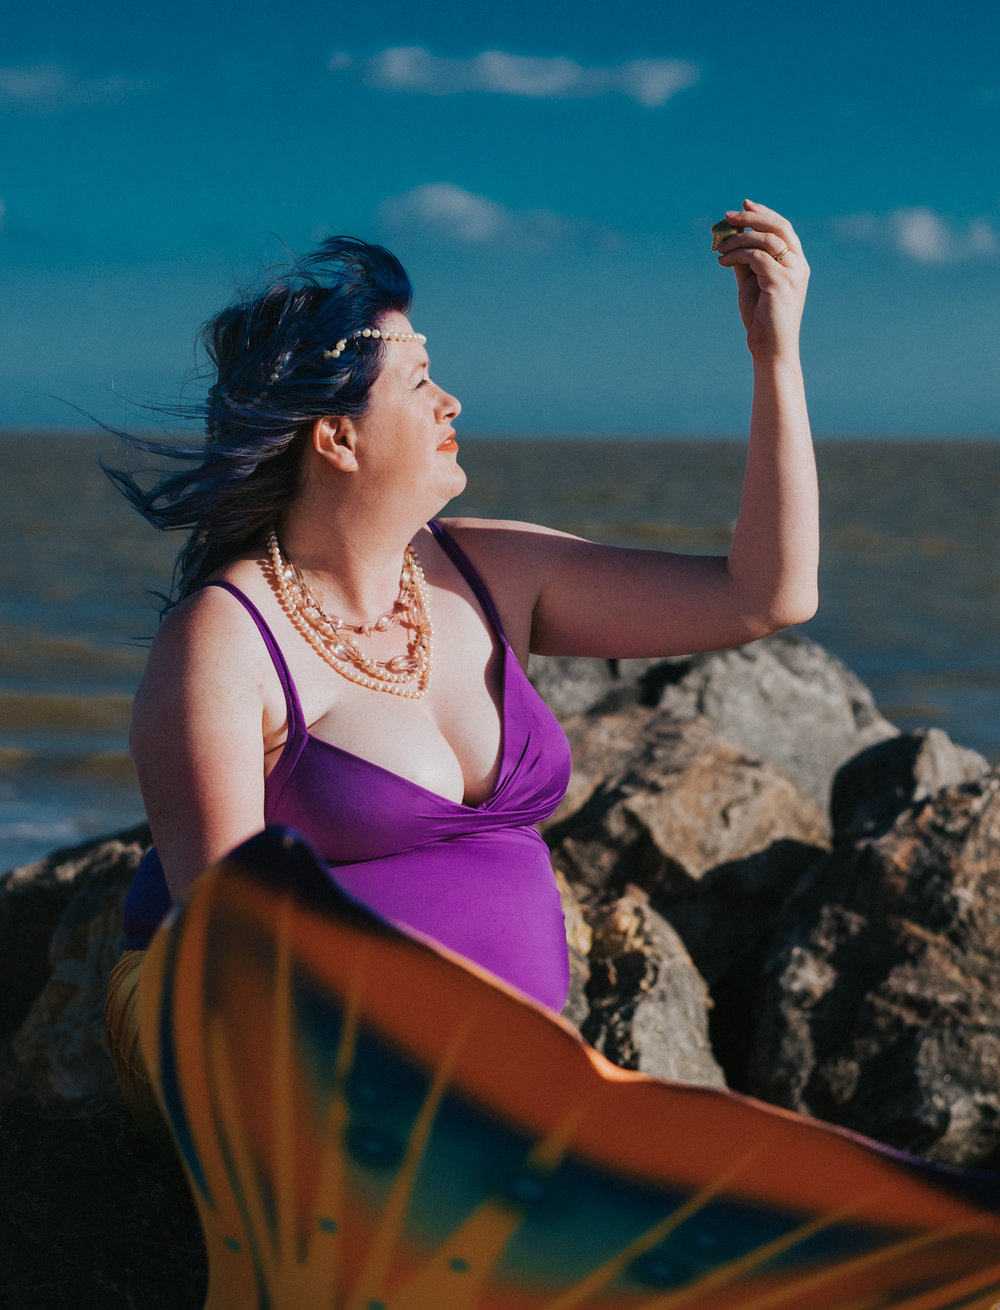 Body-Positive-Mermaids-Grace-Elizabeth-Mermaiding-UK-Alternative-Wedding-Photographer-Colchester-Essex-Suffolk-Norfolk-Devon (54 of 59).jpg